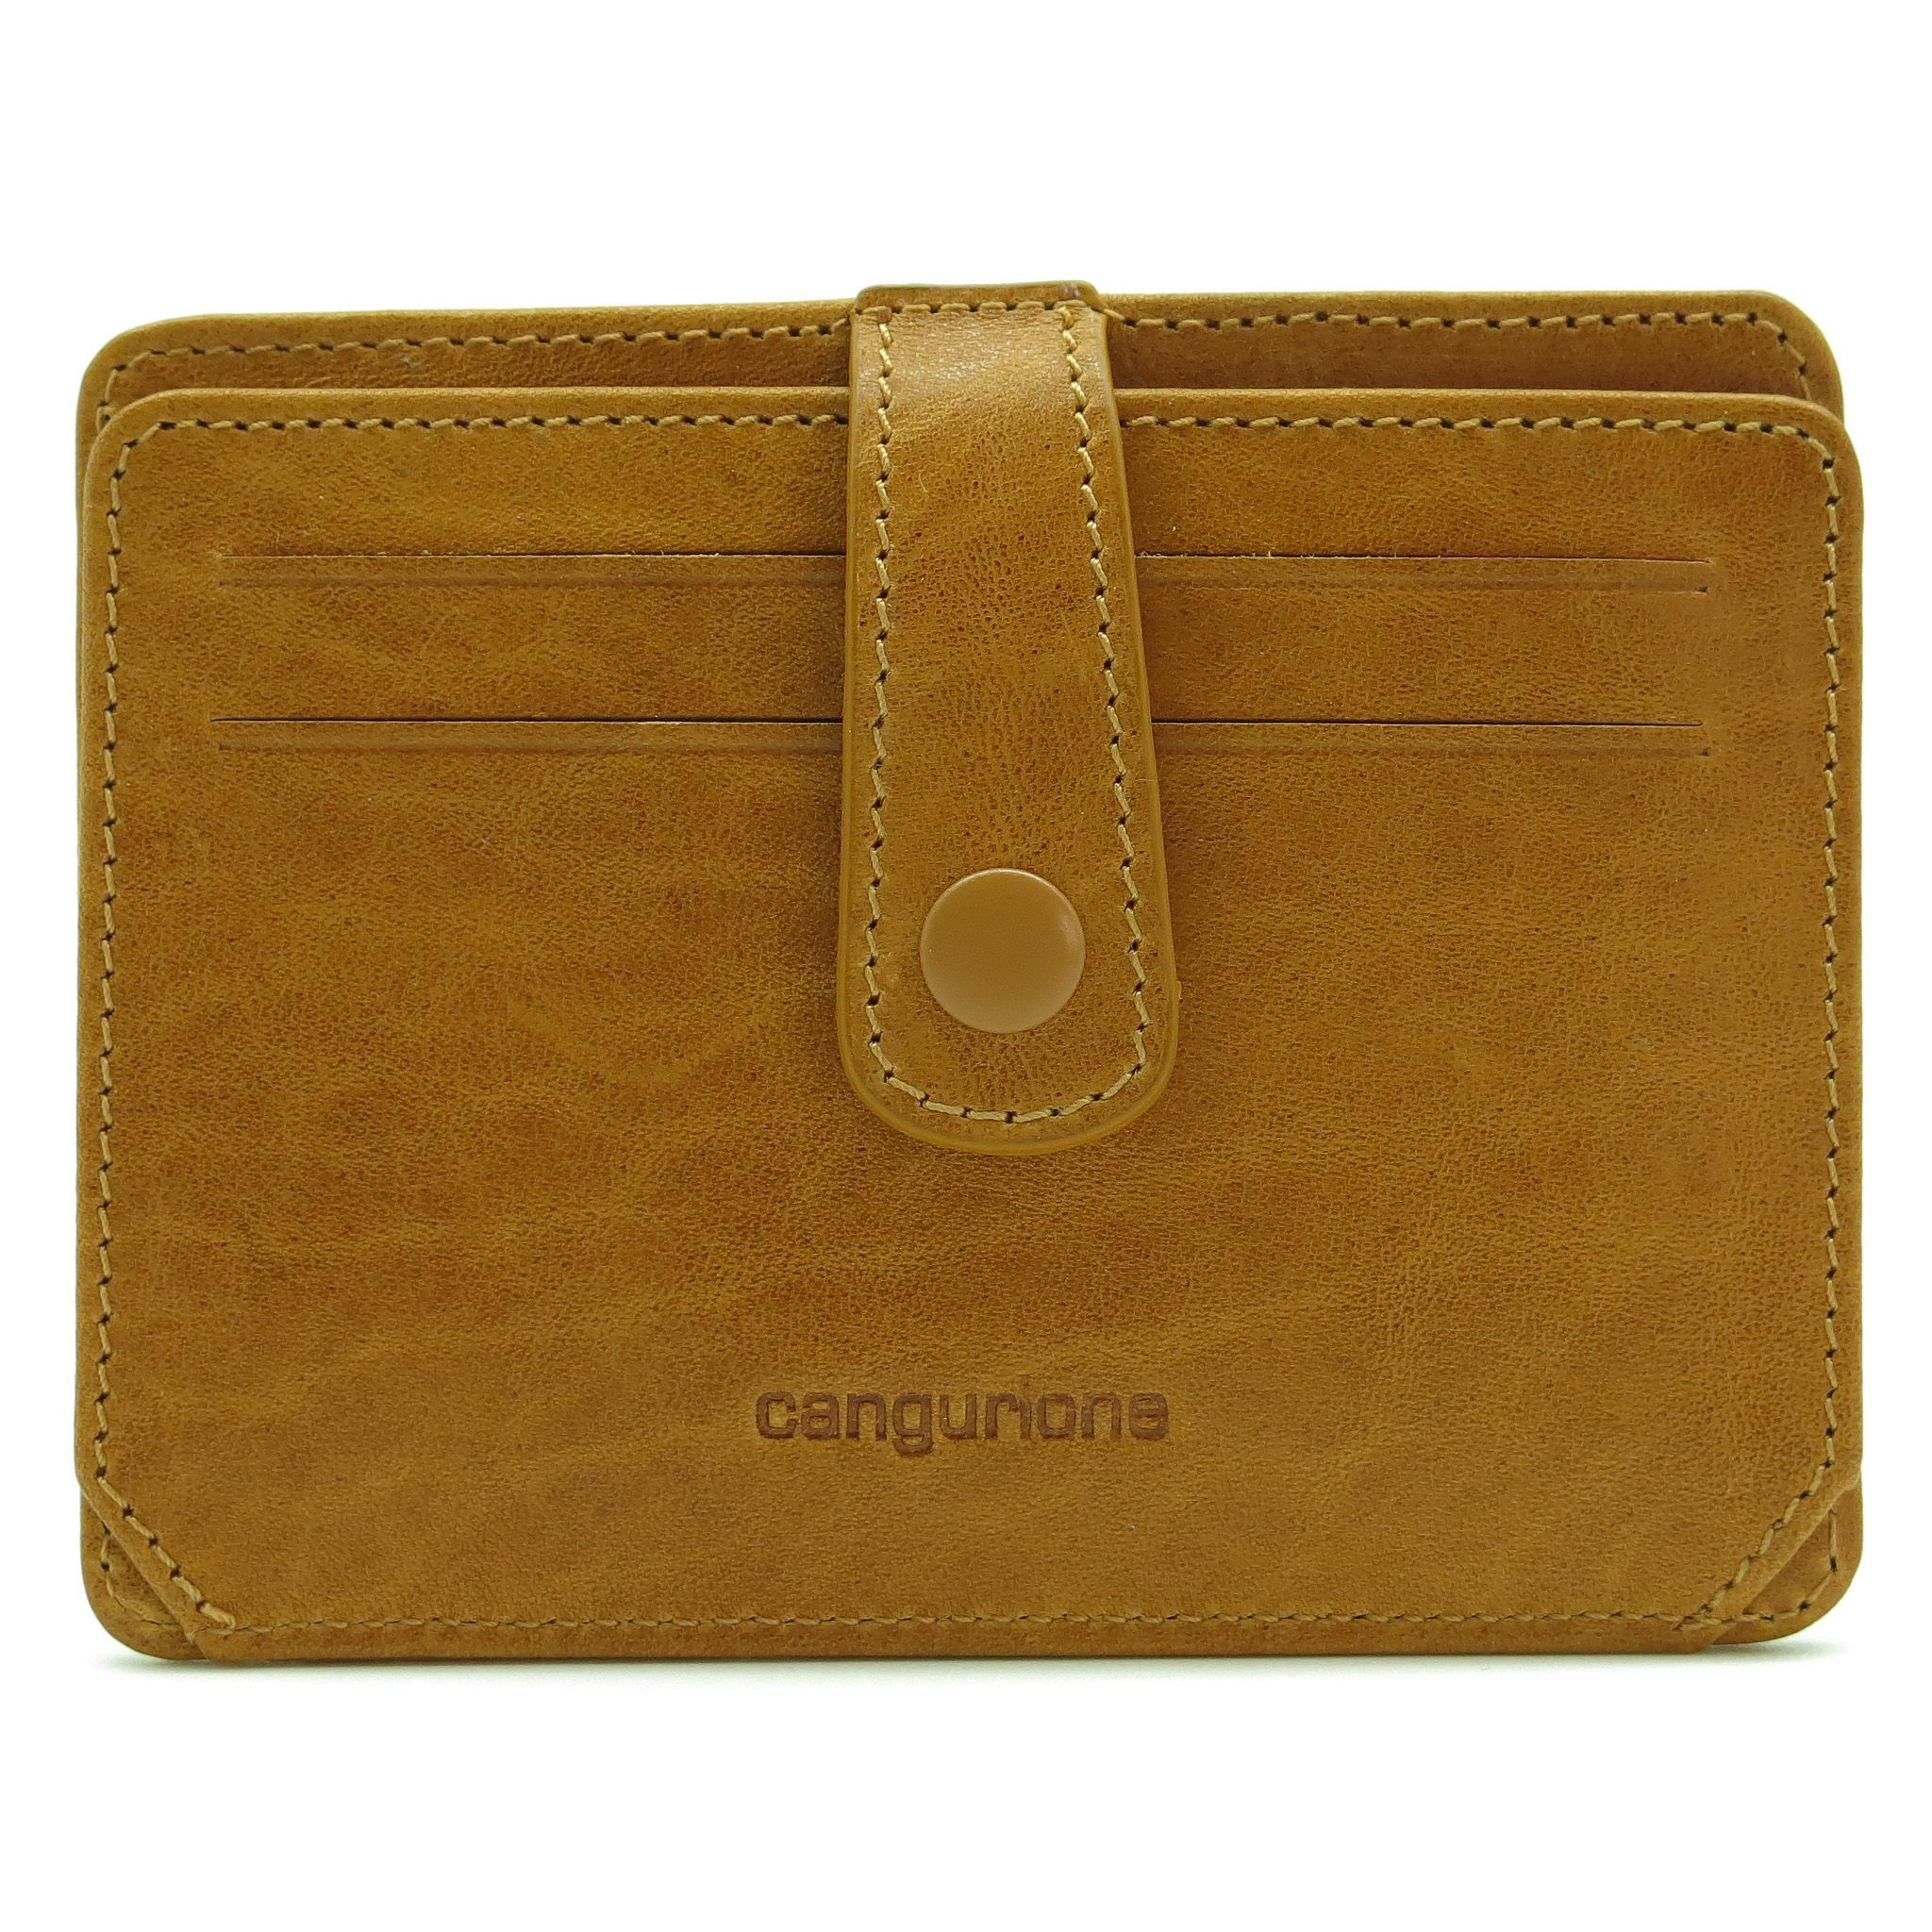 handmade leather accessories yellow